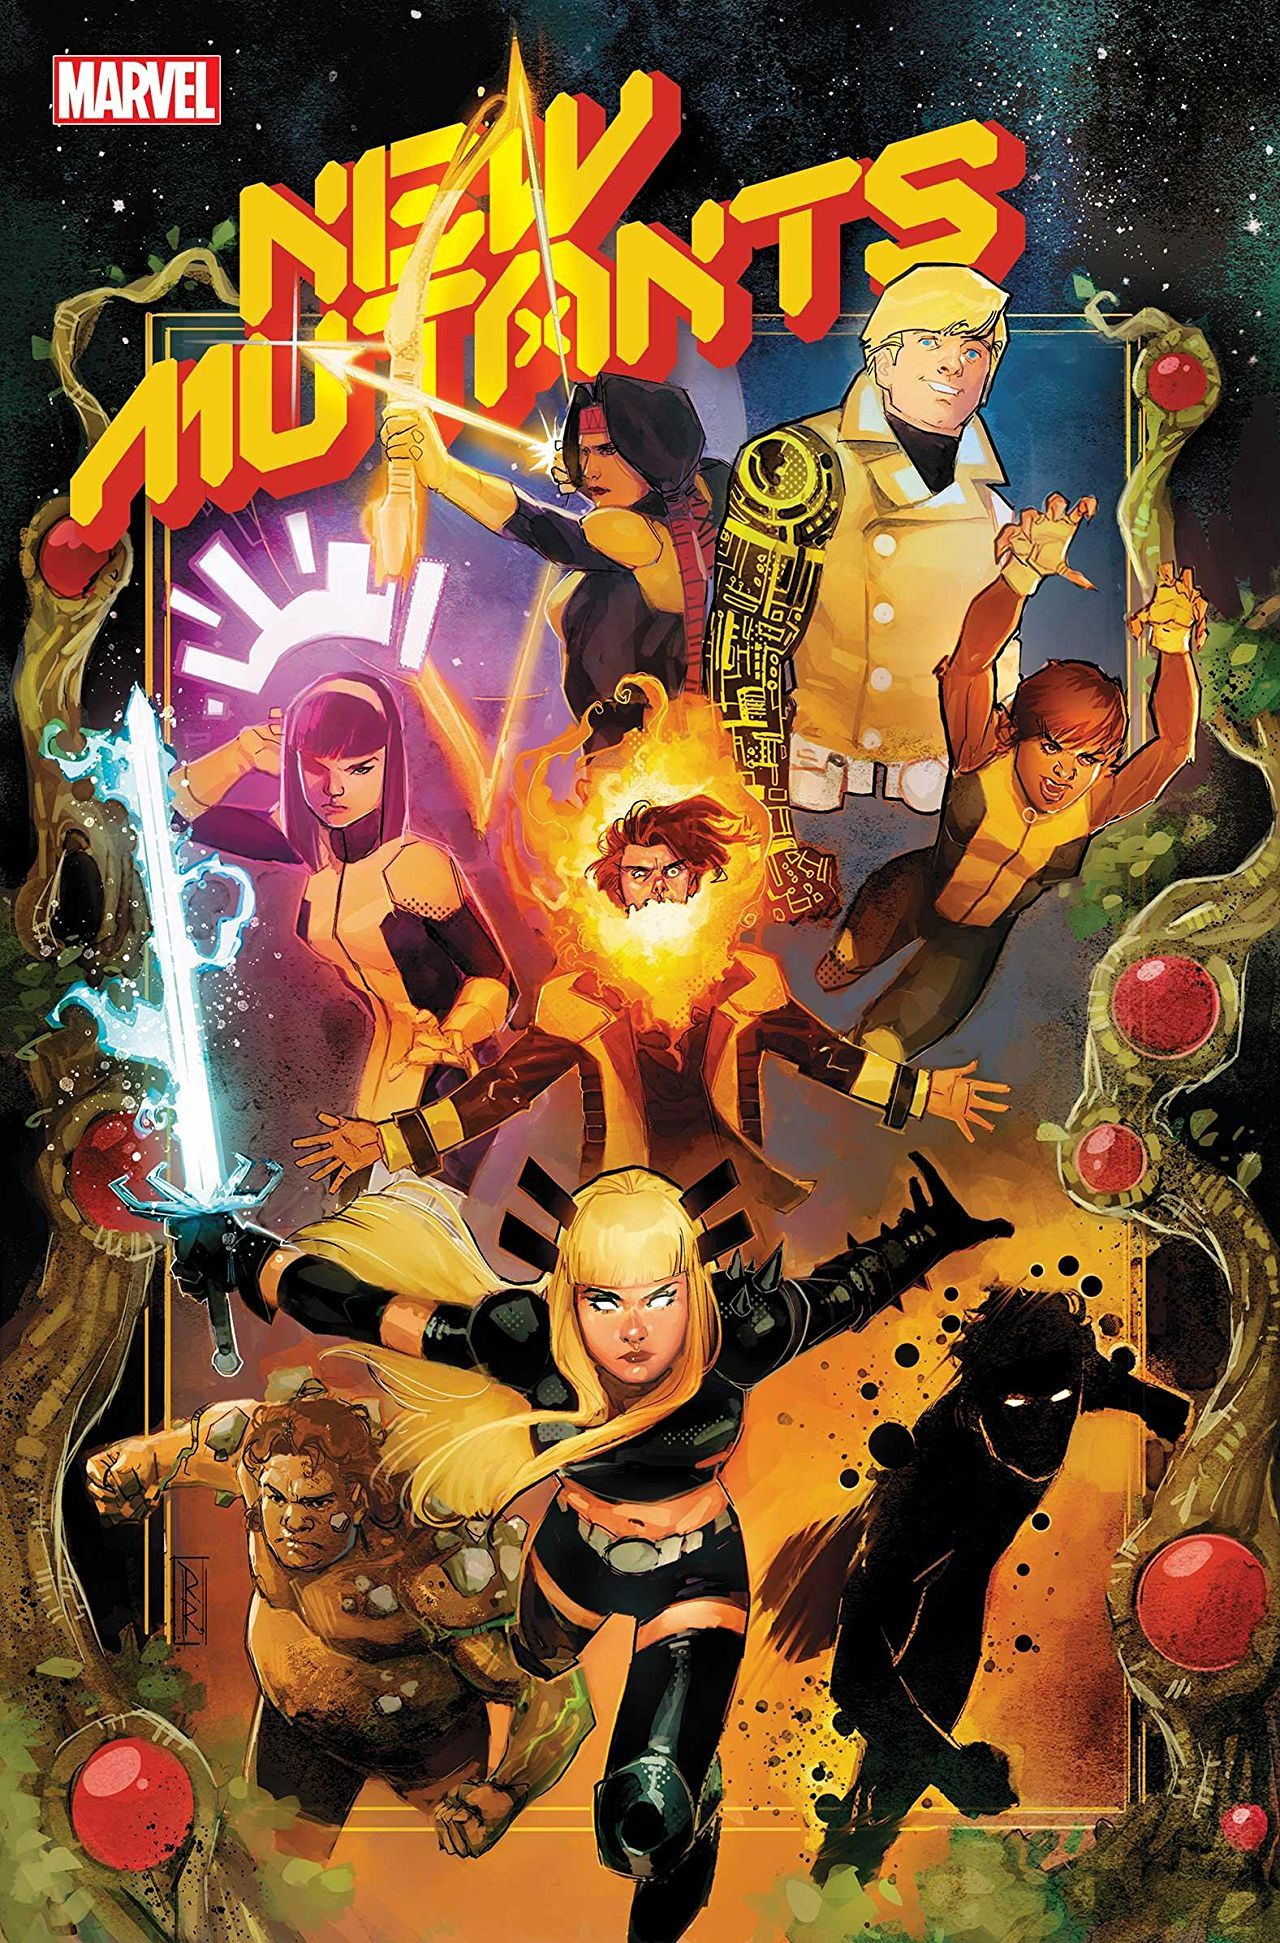 REVIEW: New Mutants #1 Brings Swashbuckling, Spacefaring Levity to Dawn of X